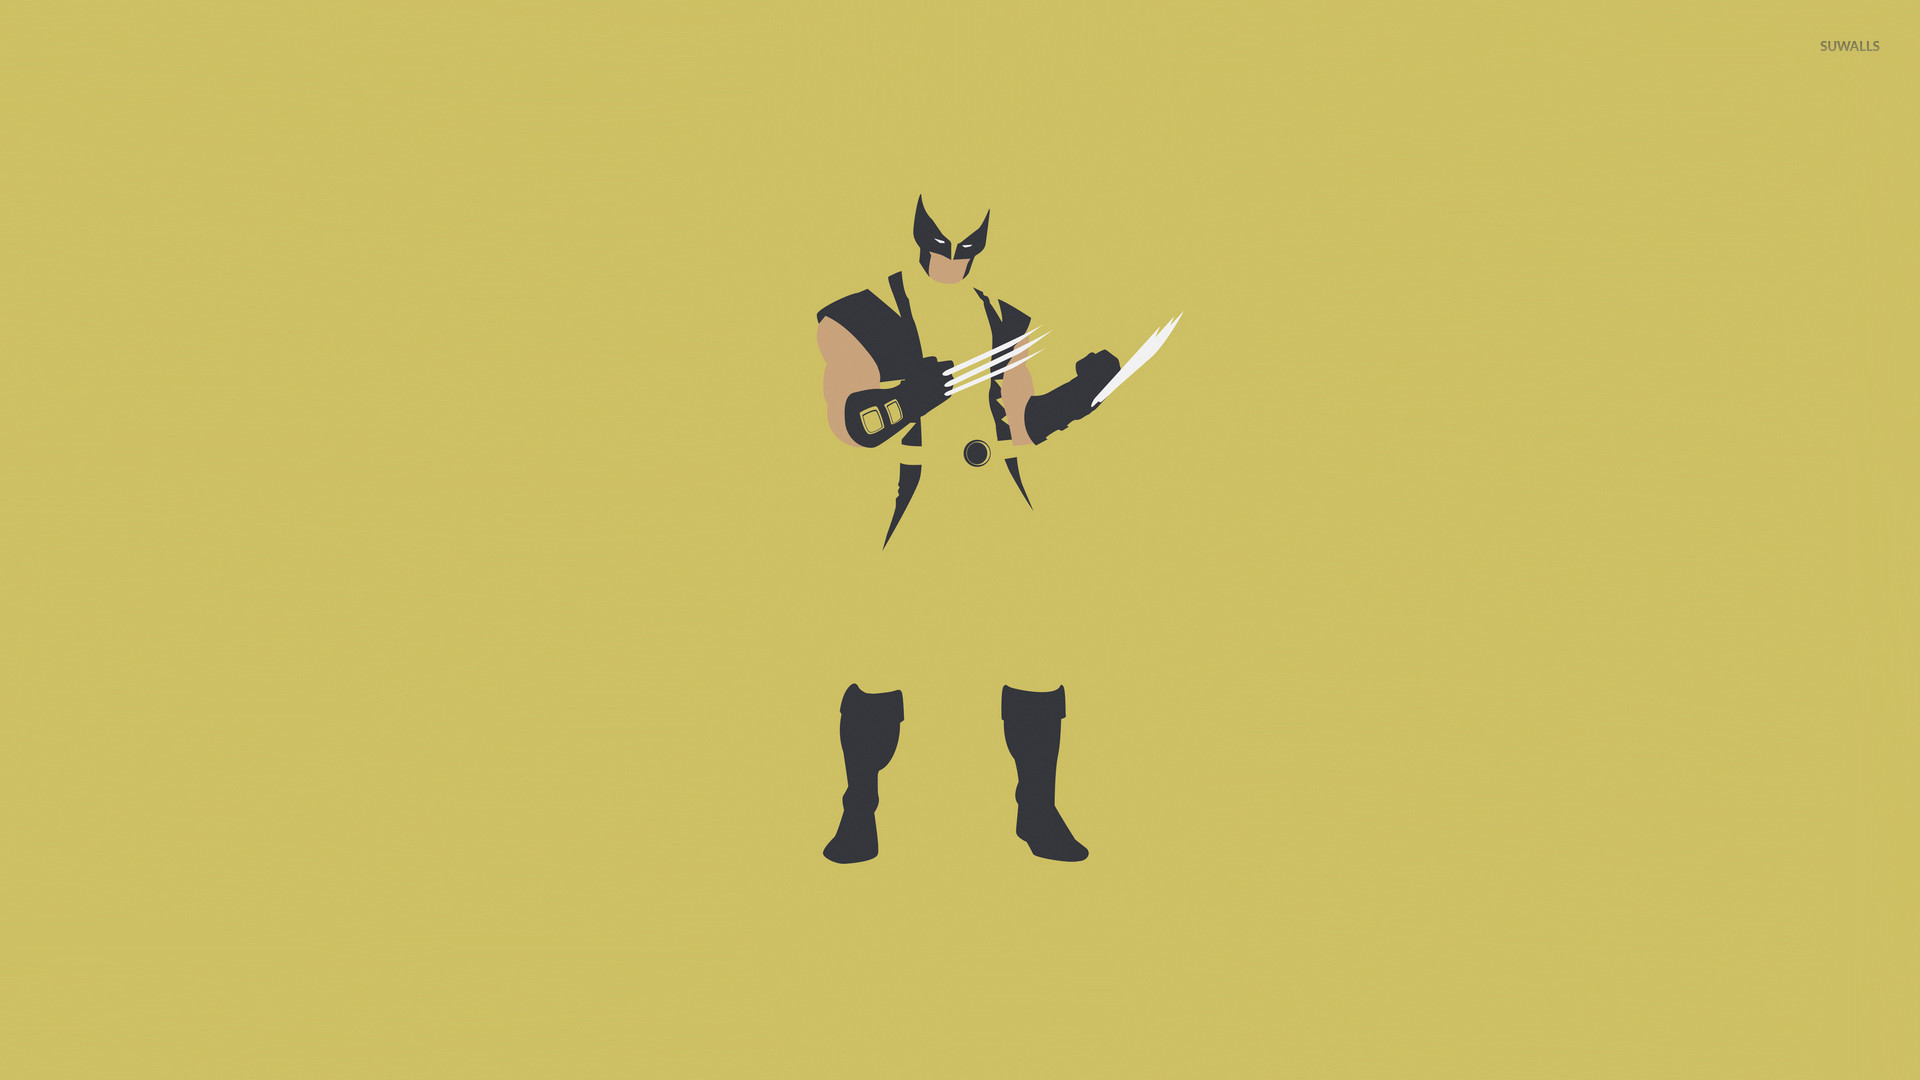 Res: 1920x1080, The claws of Wolverine wallpaper